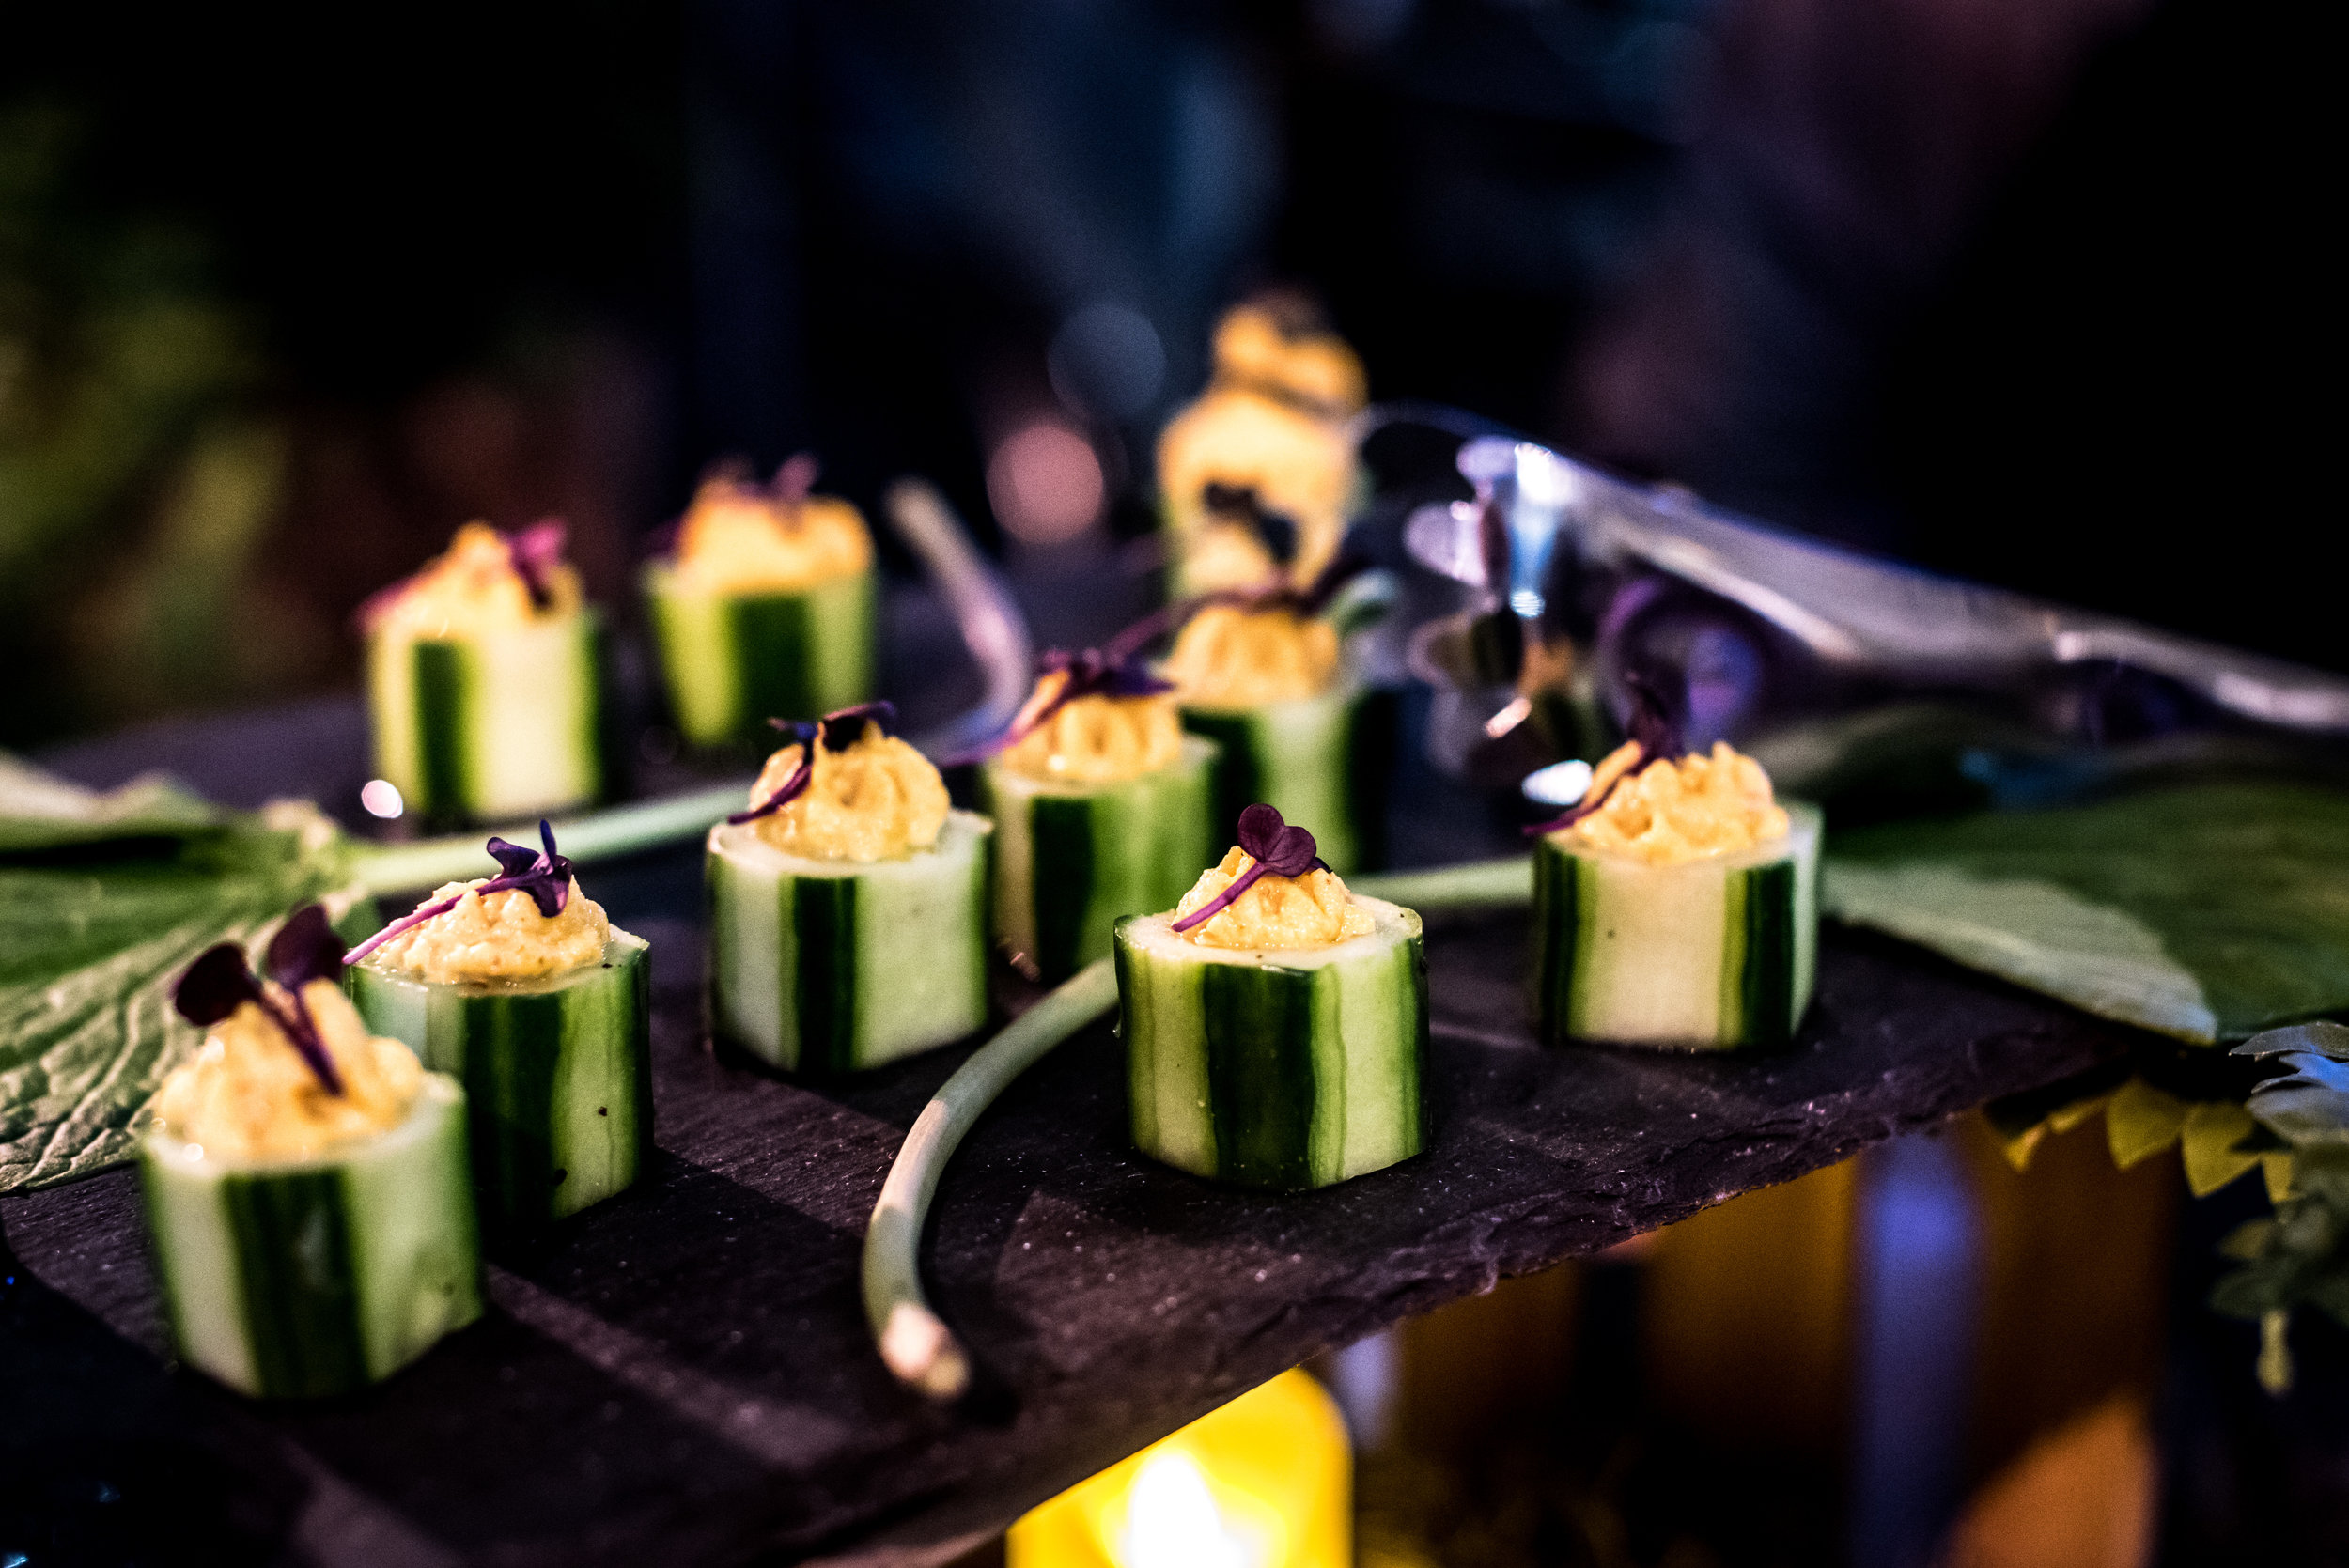 Delicious treats from elite caterers.